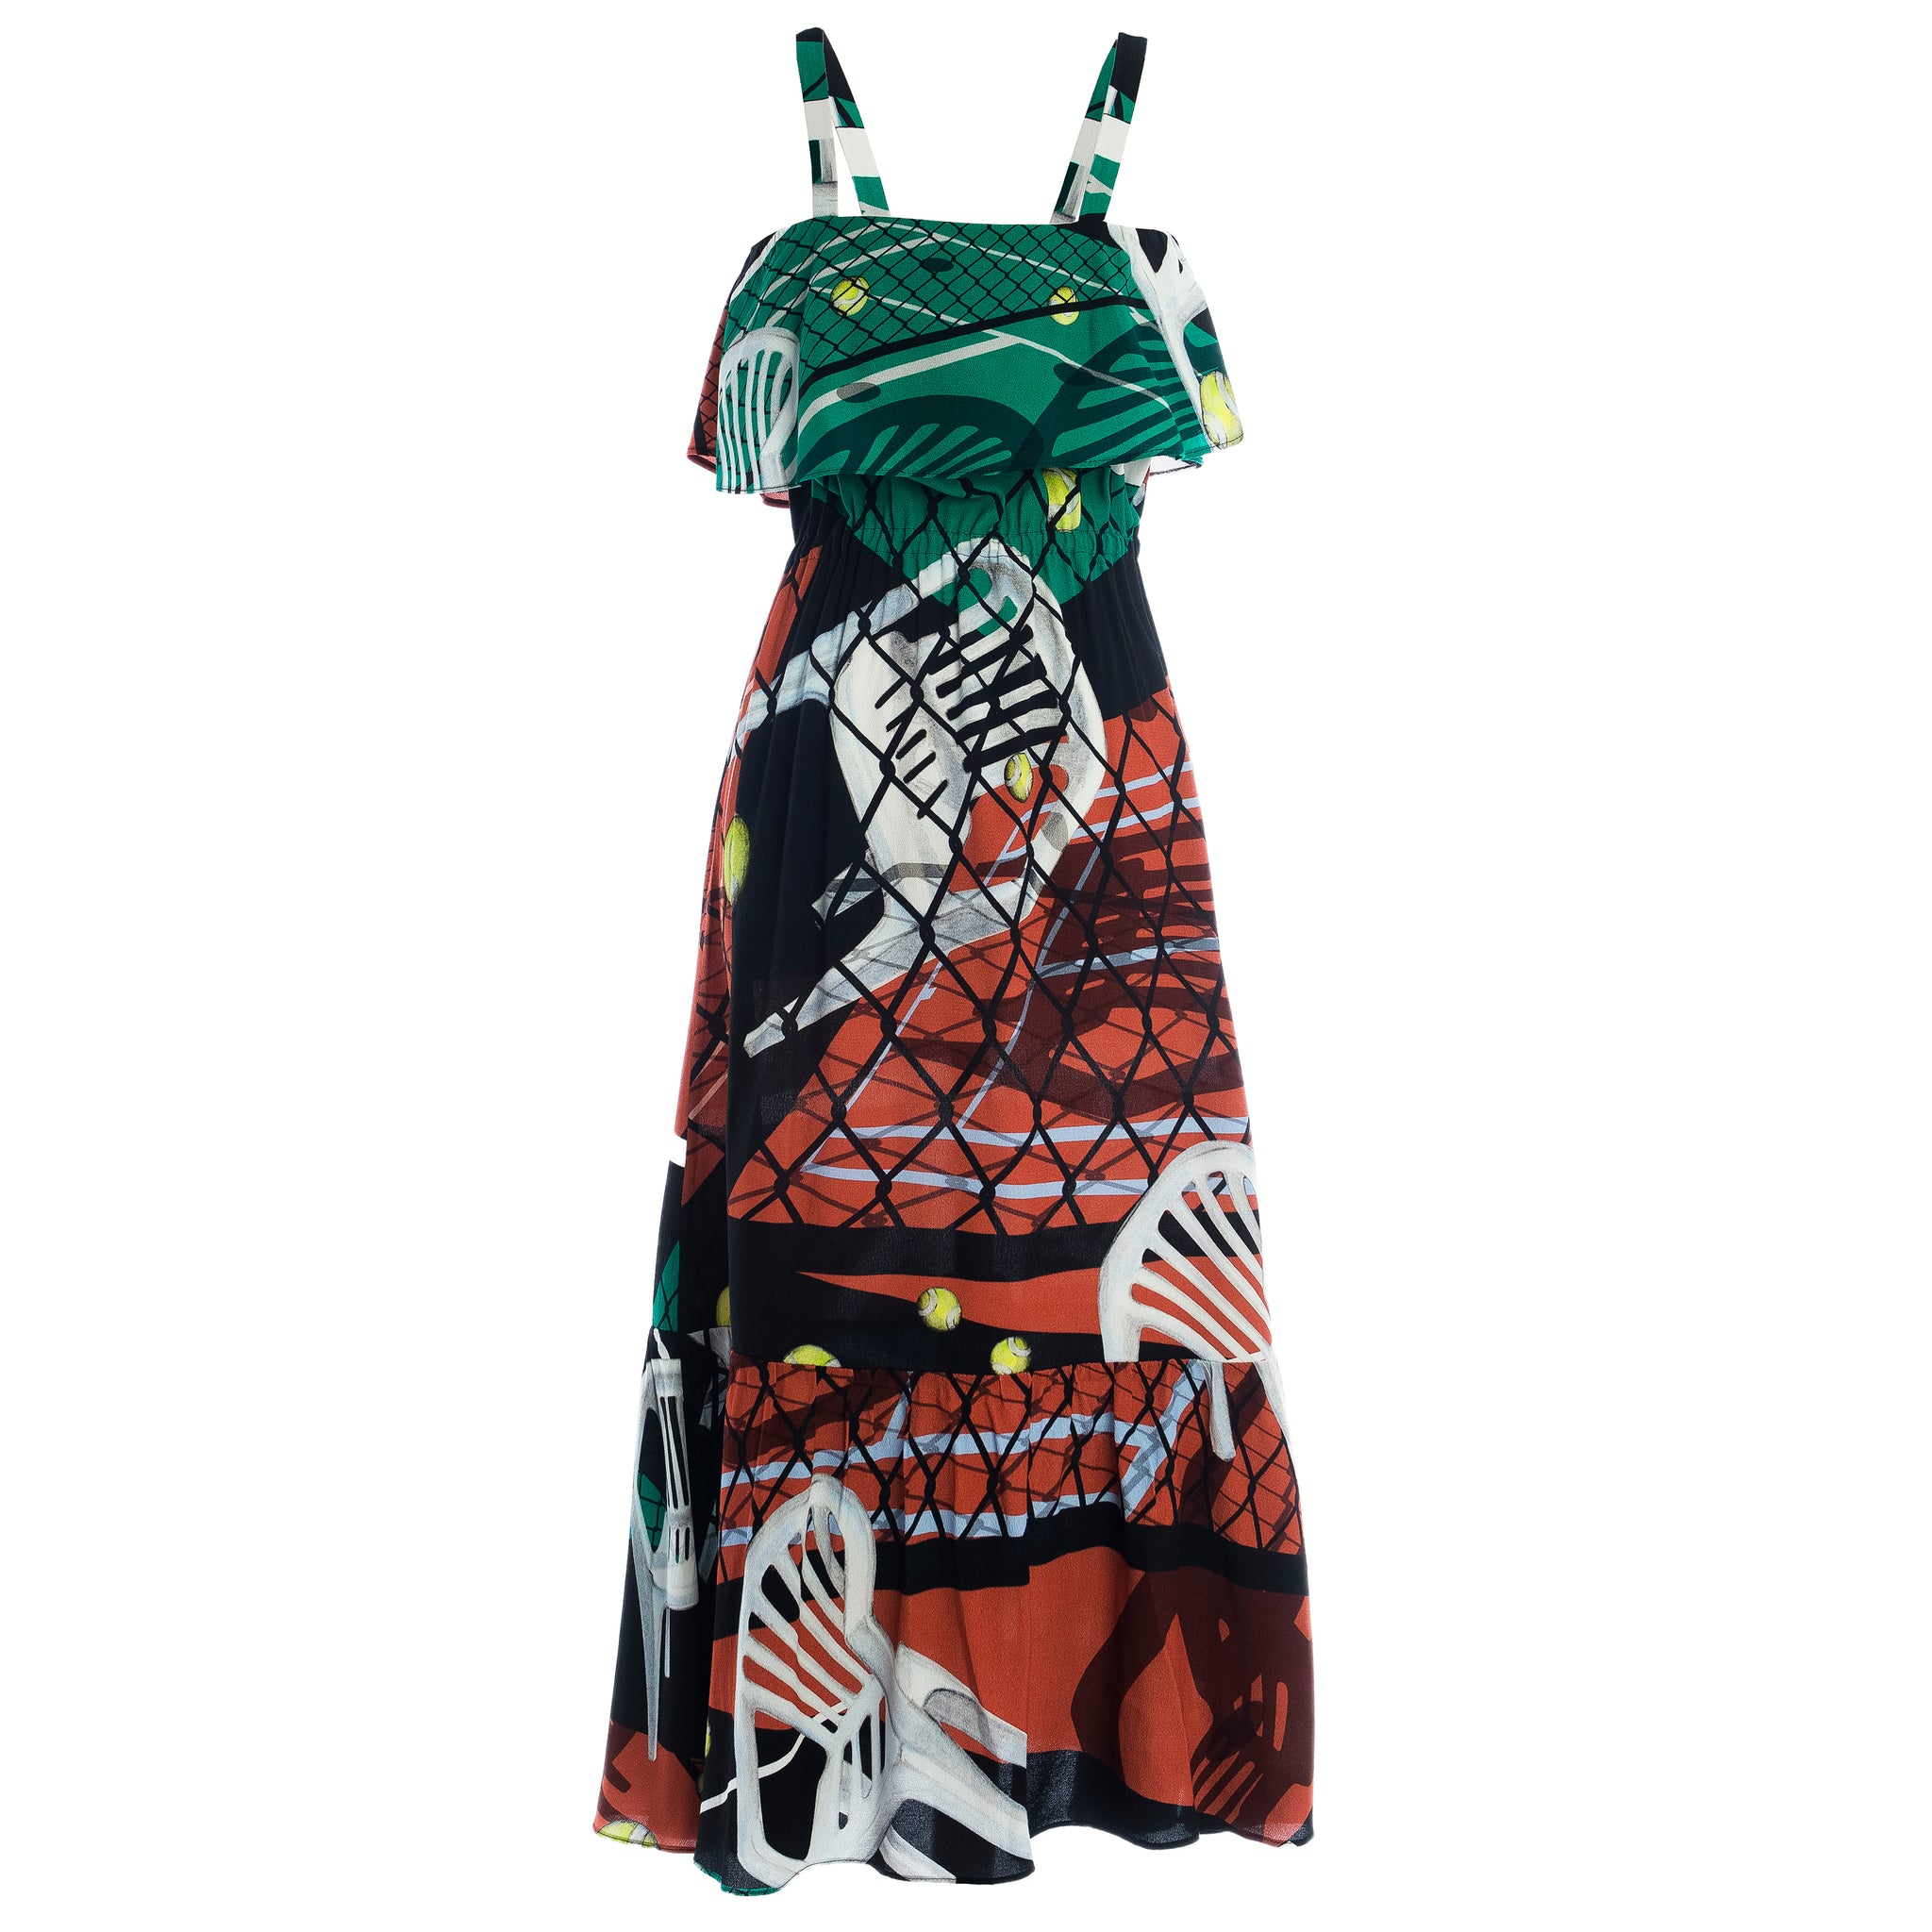 Totka Court Print Ruffled Dress